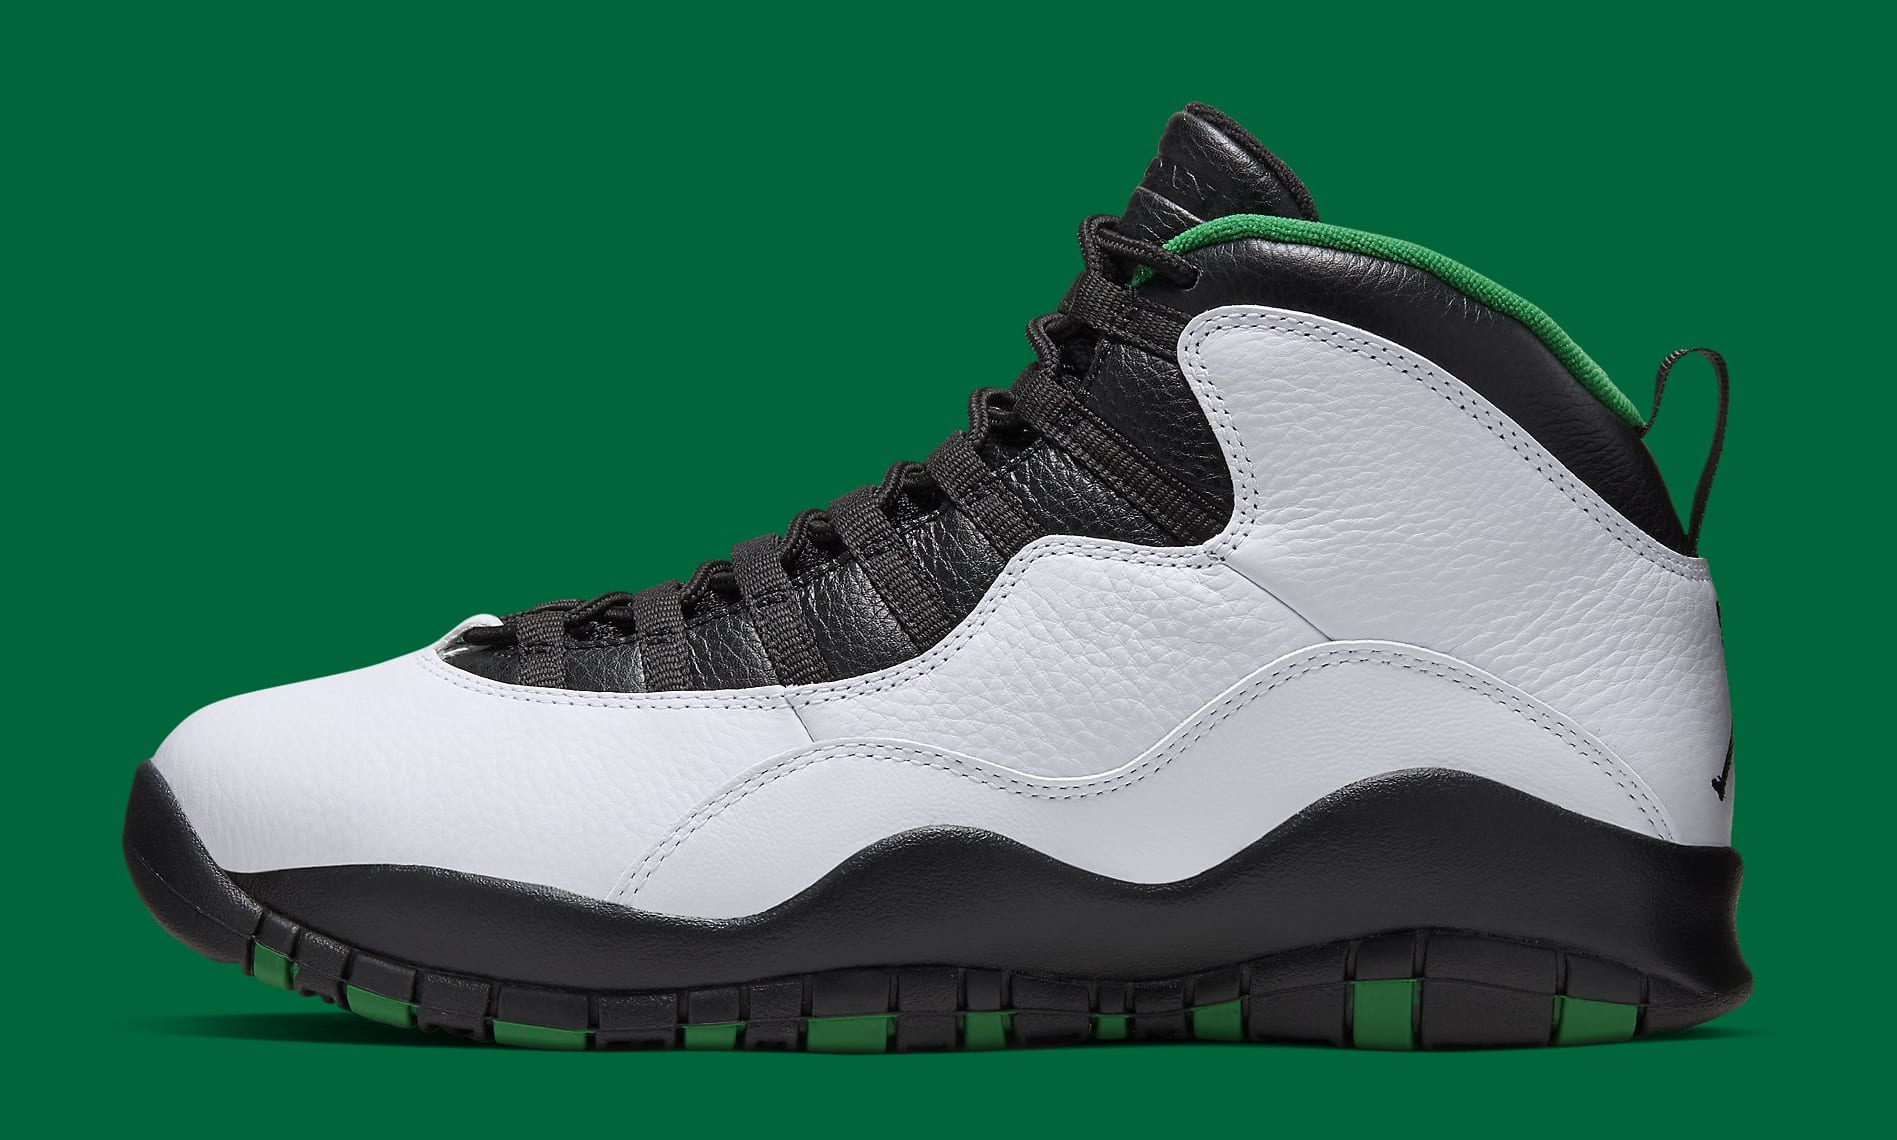 air-jordan-10-x-retro-seattle-310805-137-lateral